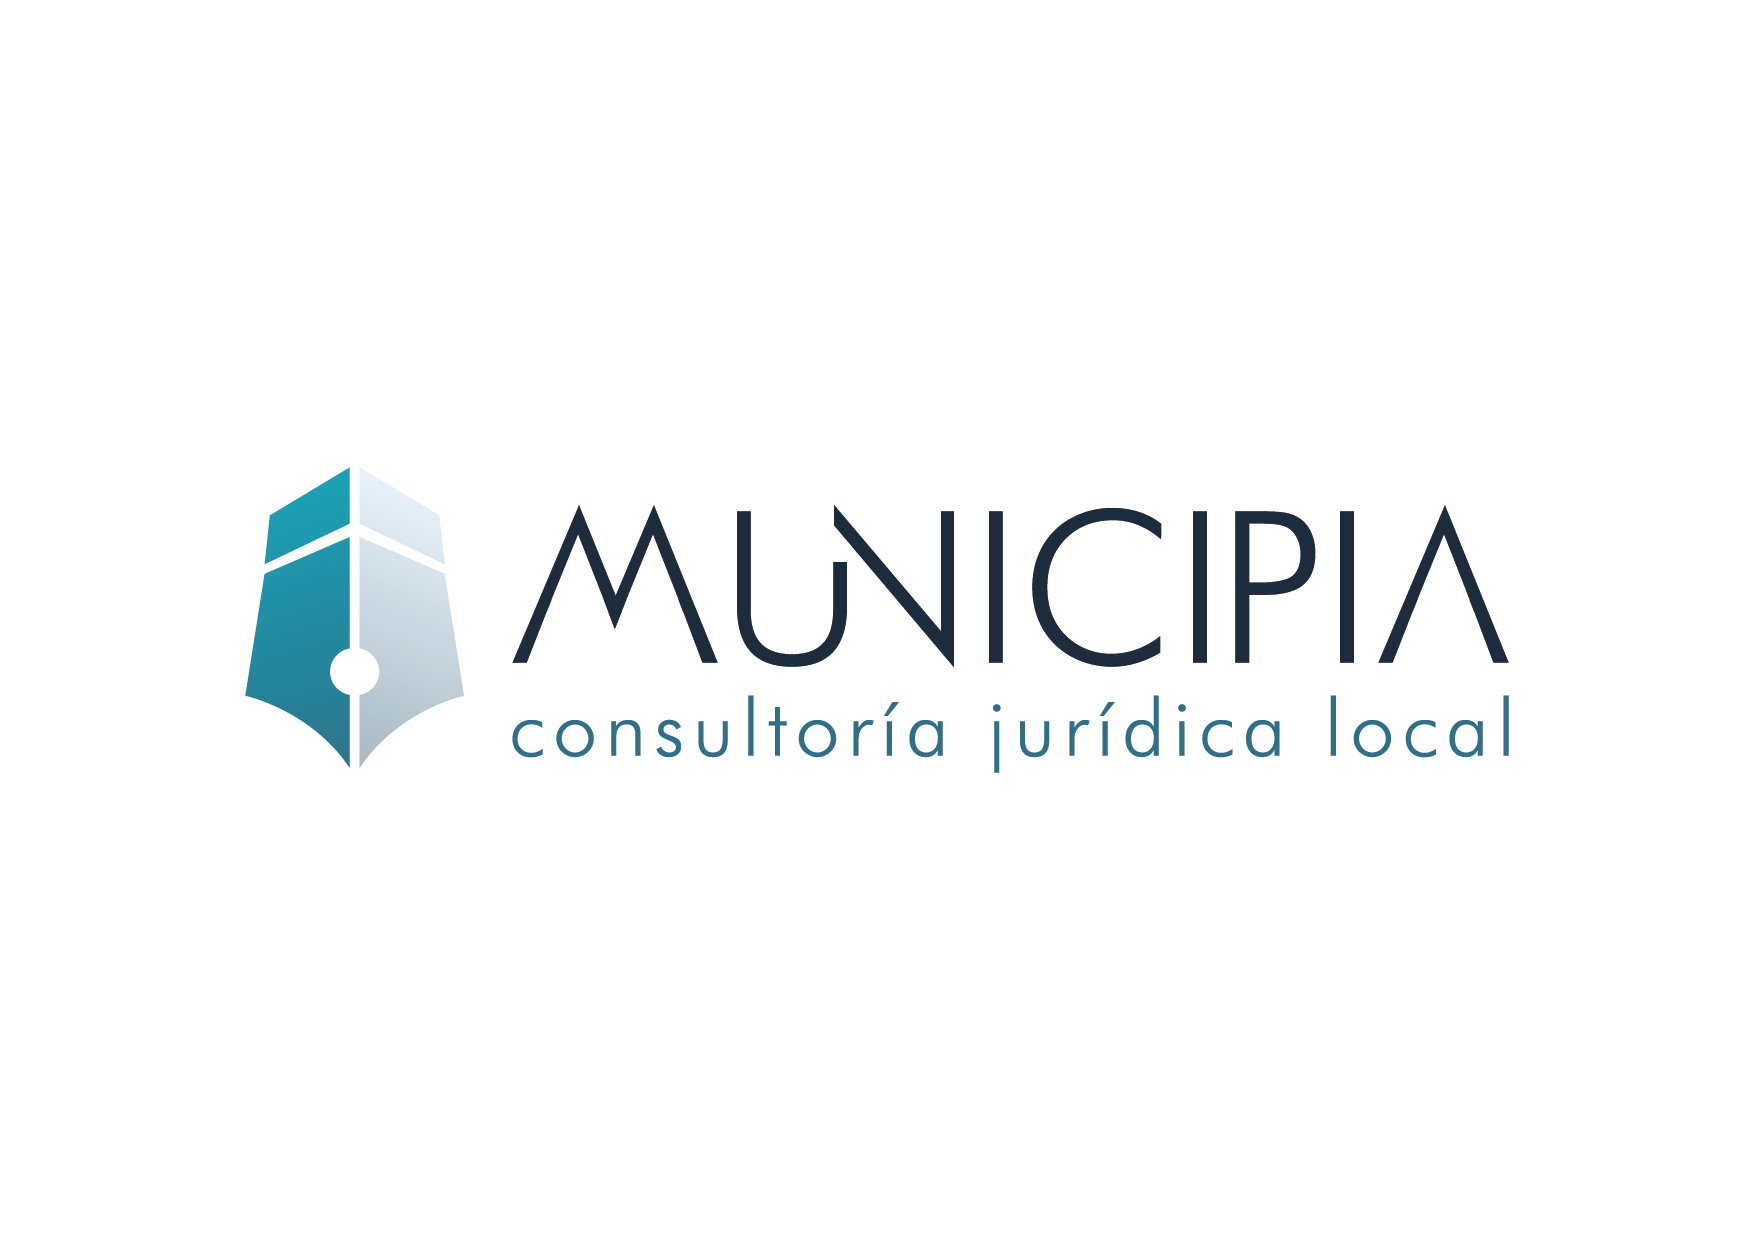 MUNICIPIA CONSULTORÍA JURÍDICA LOCAL